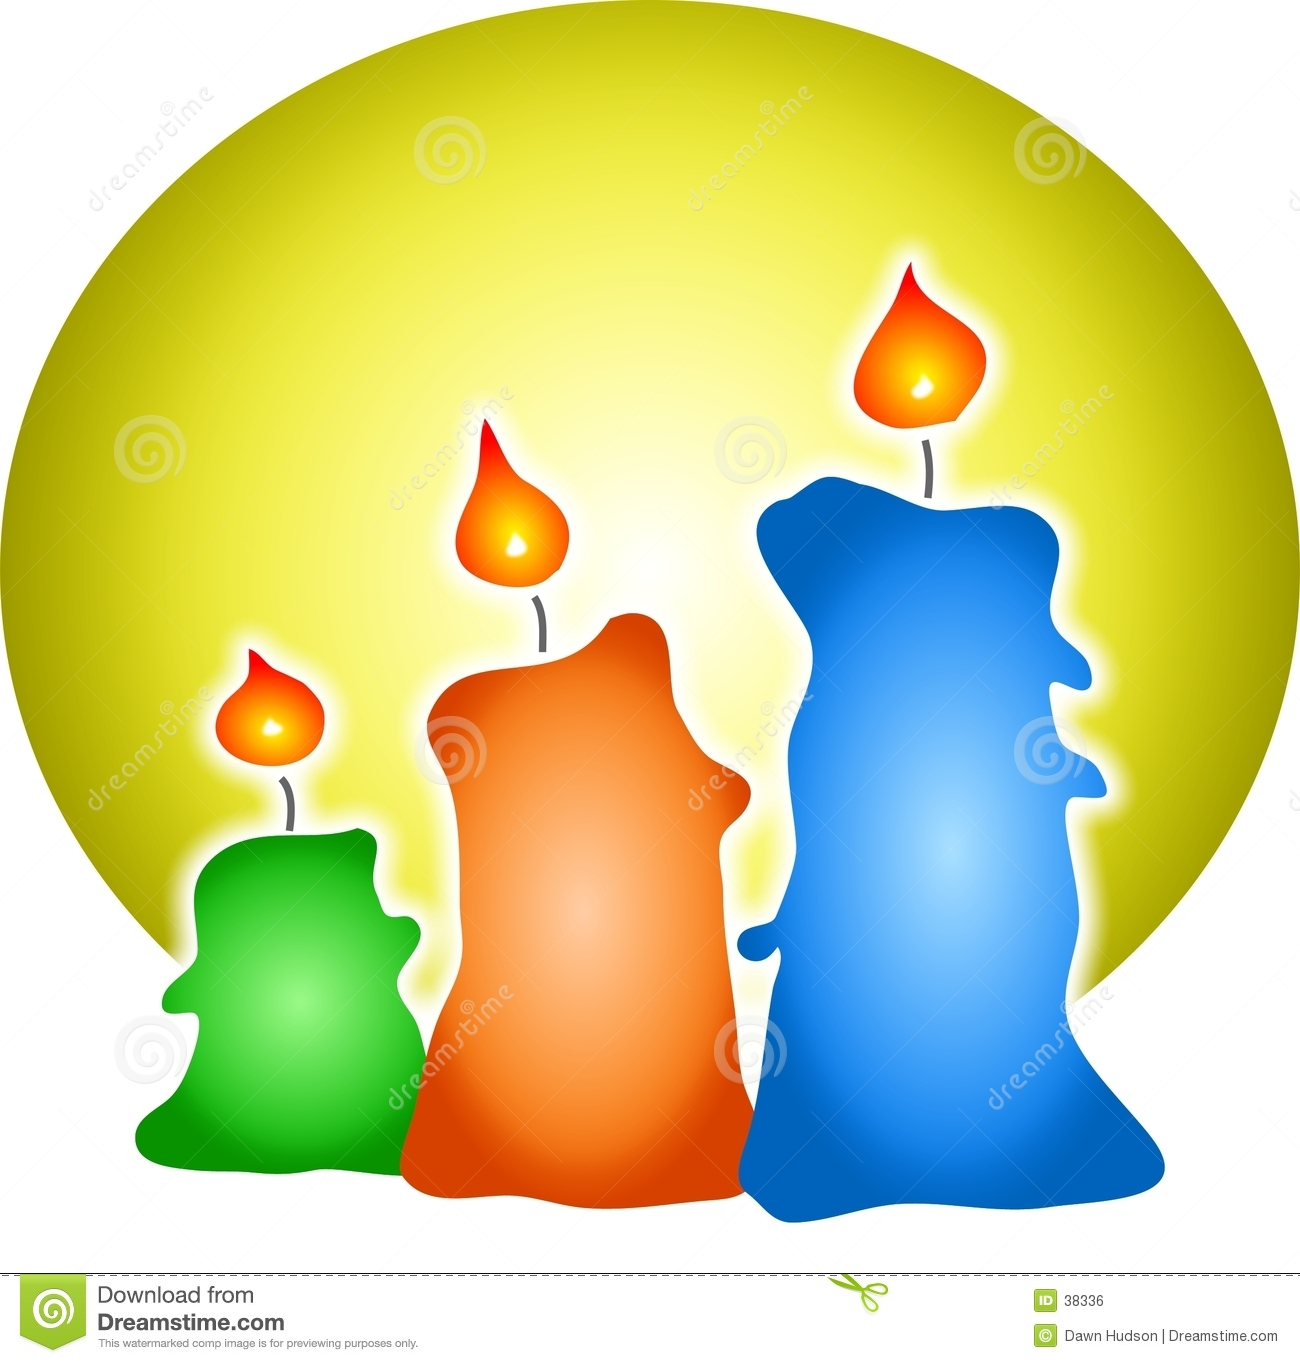 Candles coloured